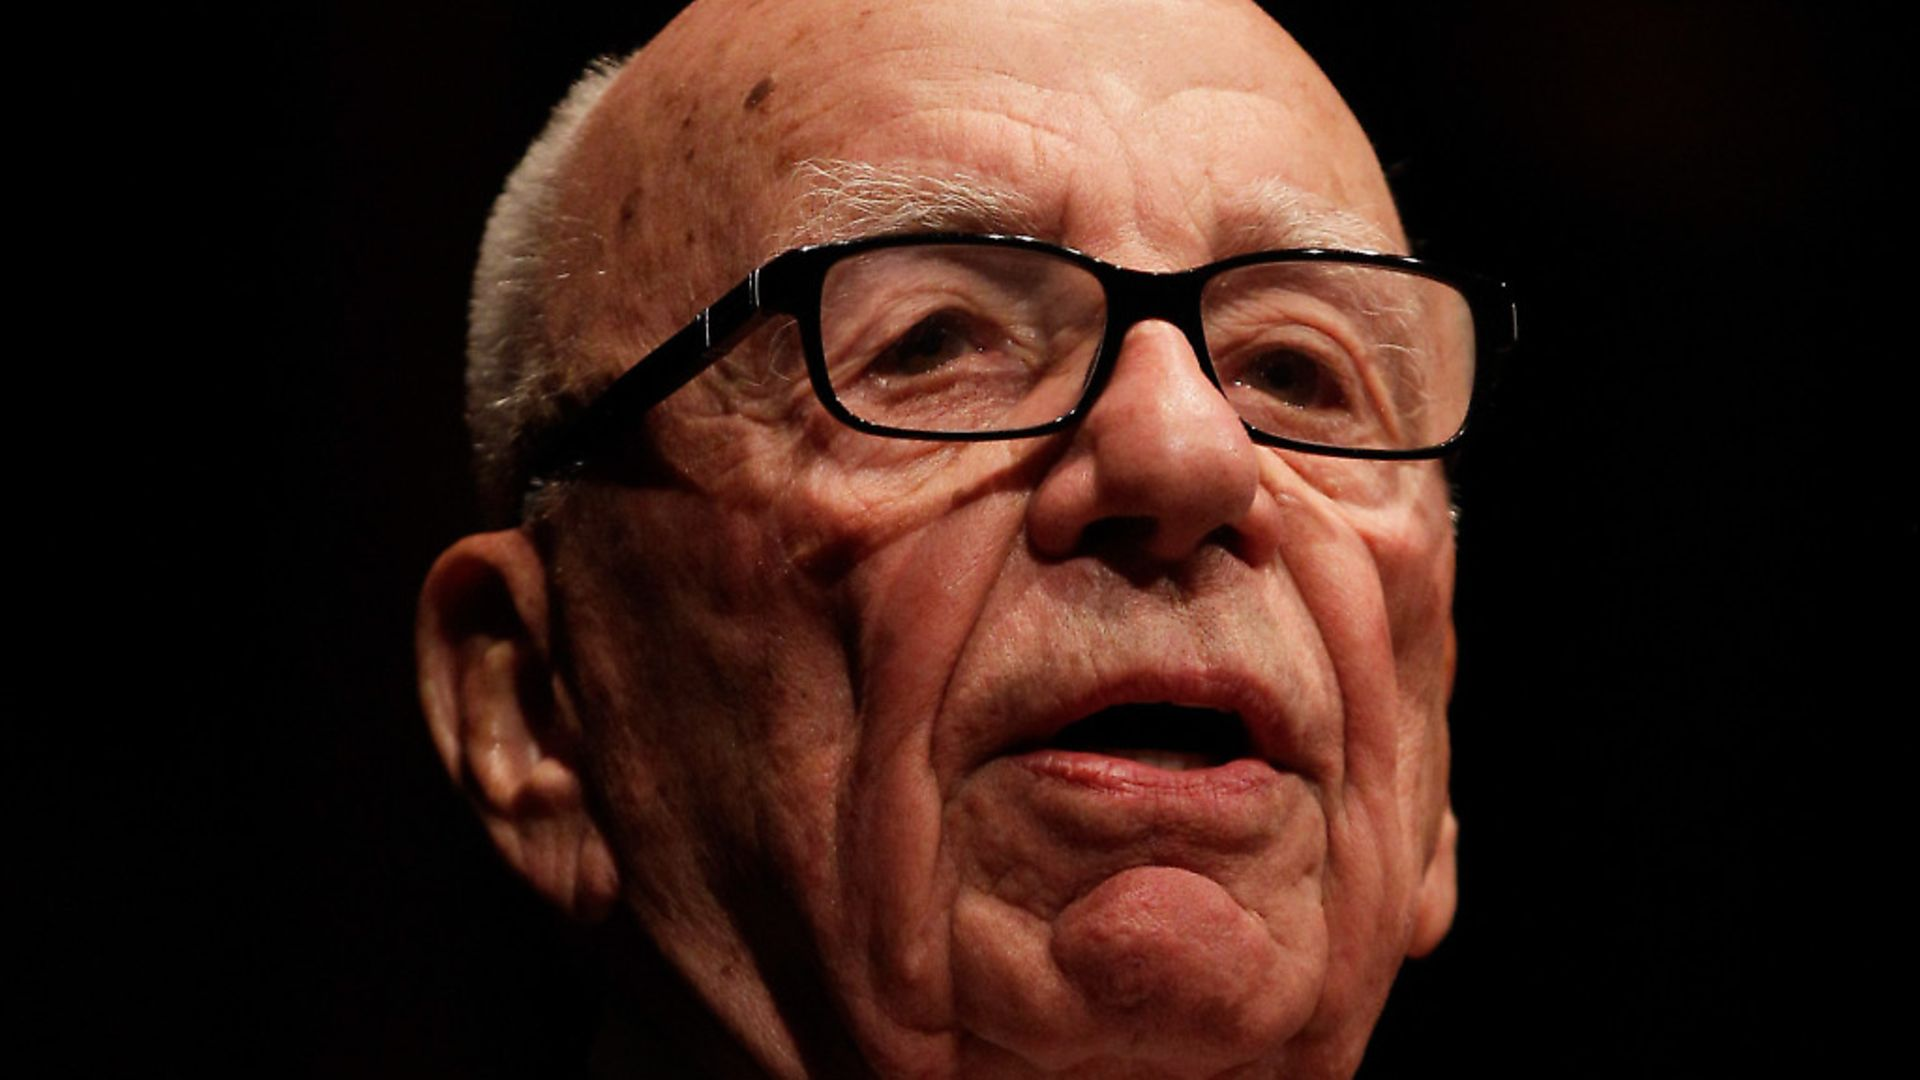 """Rupert Murdoch's new radio station, Times Radio, has been """"sensitive to criticism"""", according to a senior BBC executive. Picture: Getty Images - Credit: Bloomberg via Getty Images"""